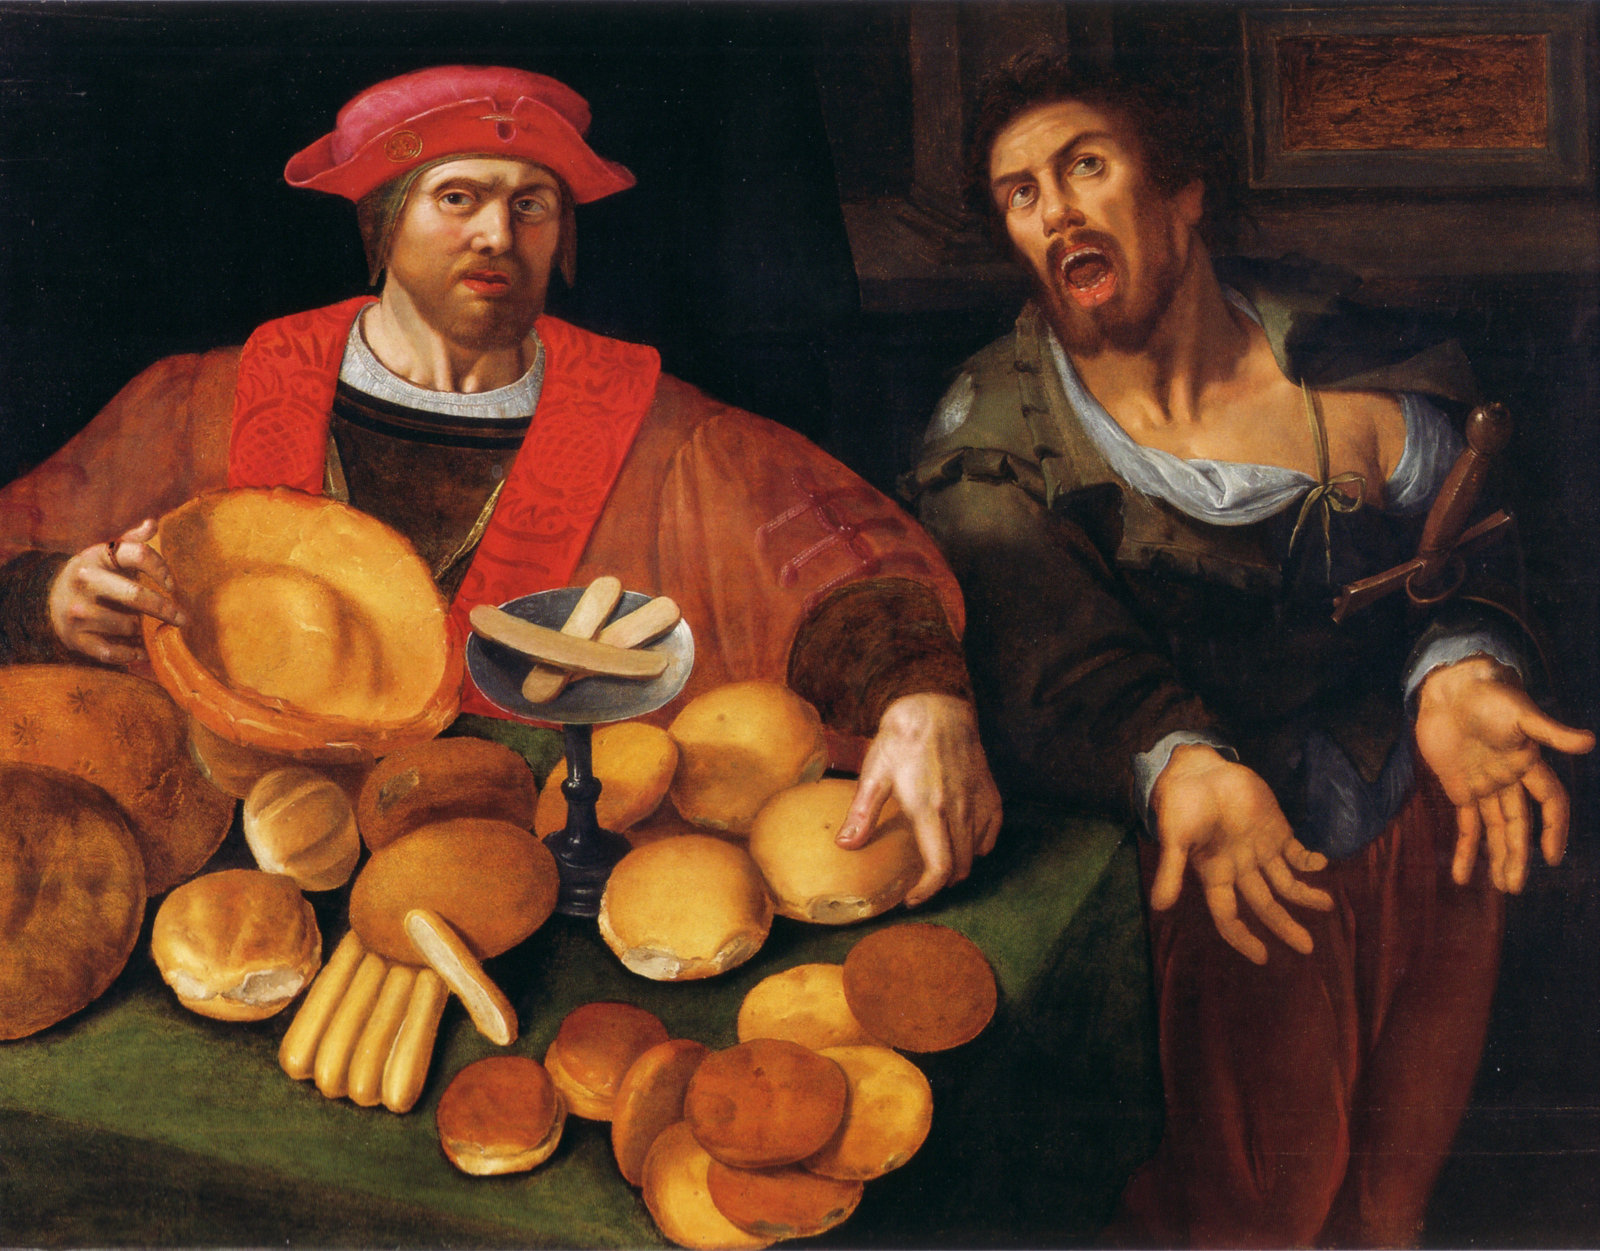 siftingthepast_rich-and-poor_unknown_17th-century